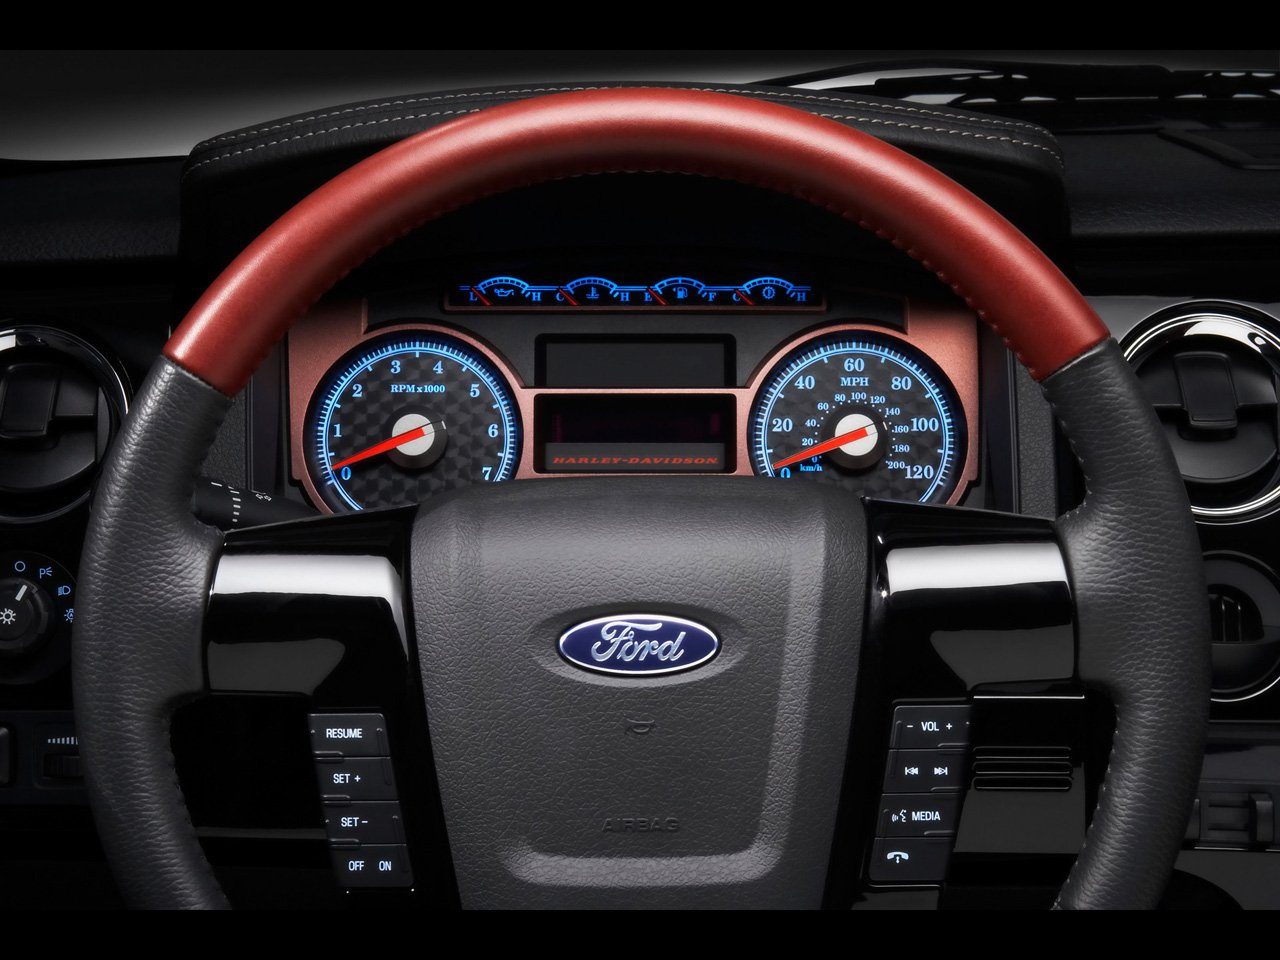 Ford recalls 14 million cars because steering wheel can come off